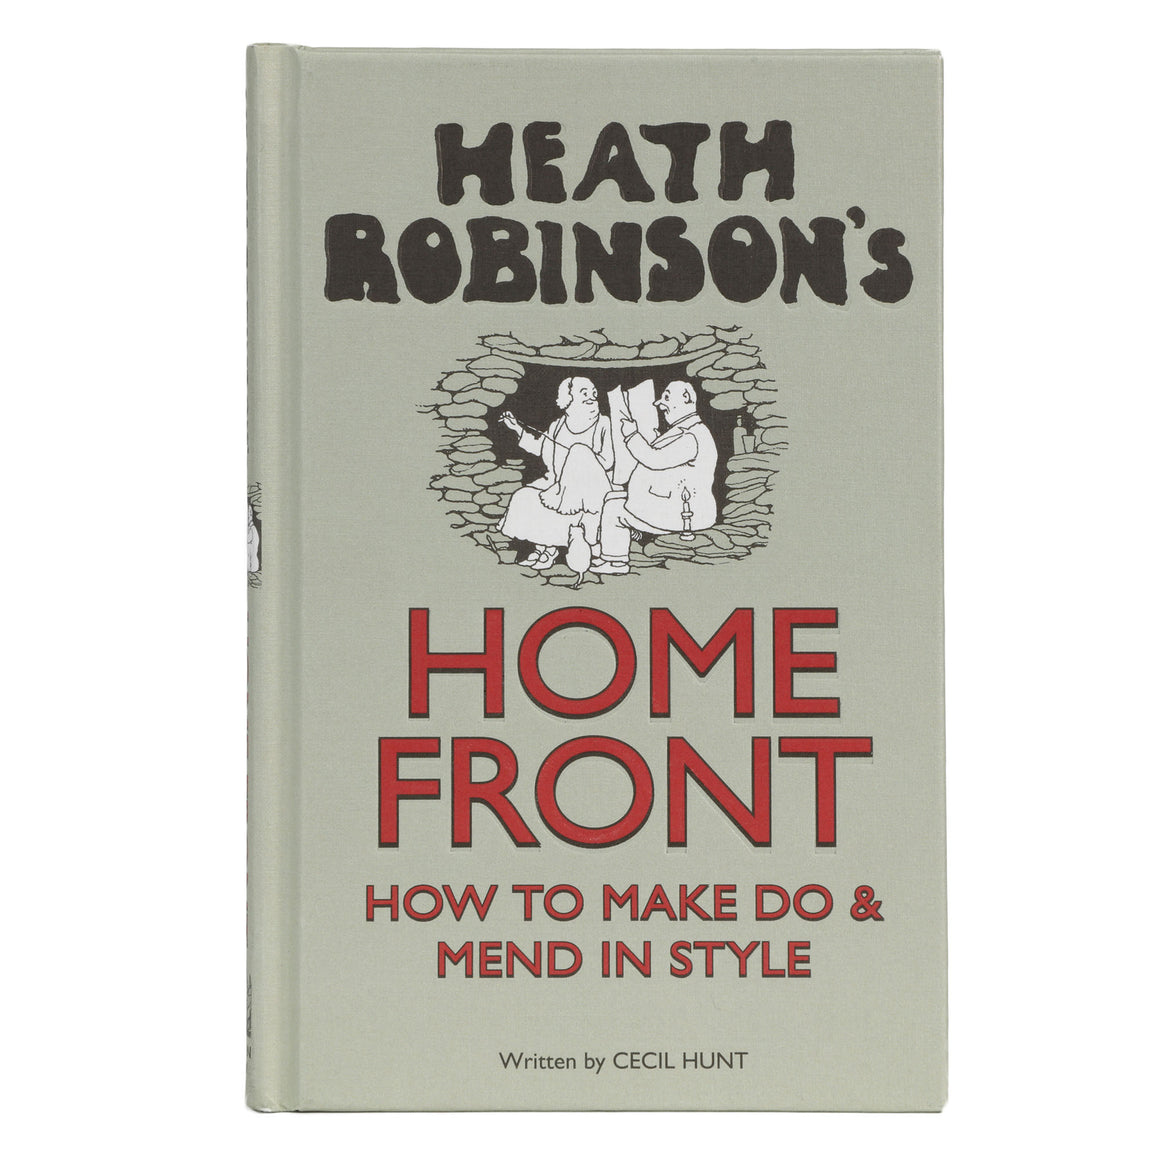 Heath Robinson's Home Front - How to Make Do & Mend in Style